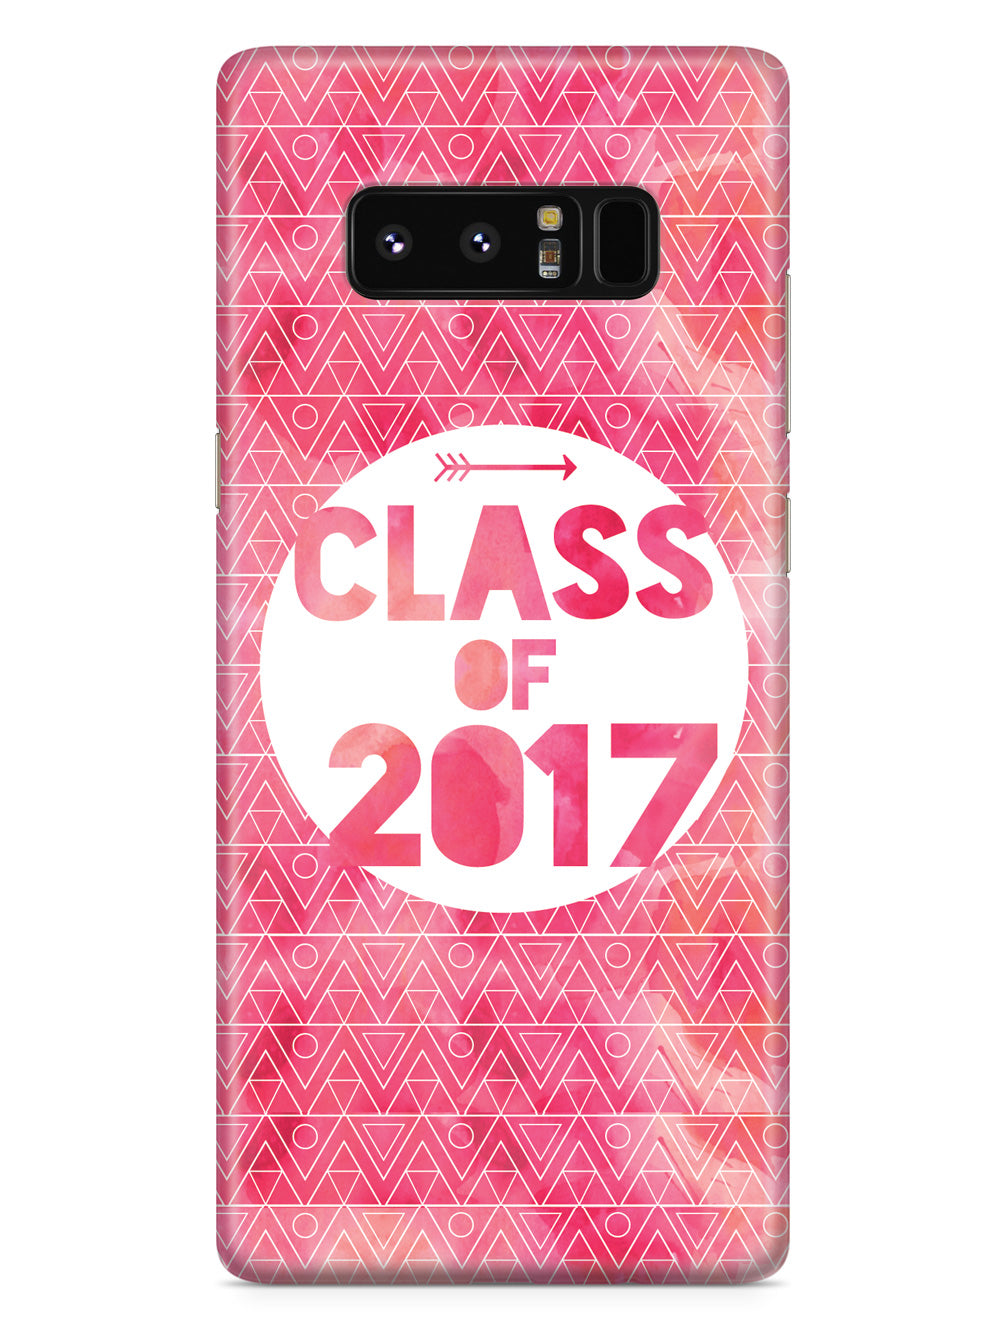 Class of 2017 - Pink Watercolor Case